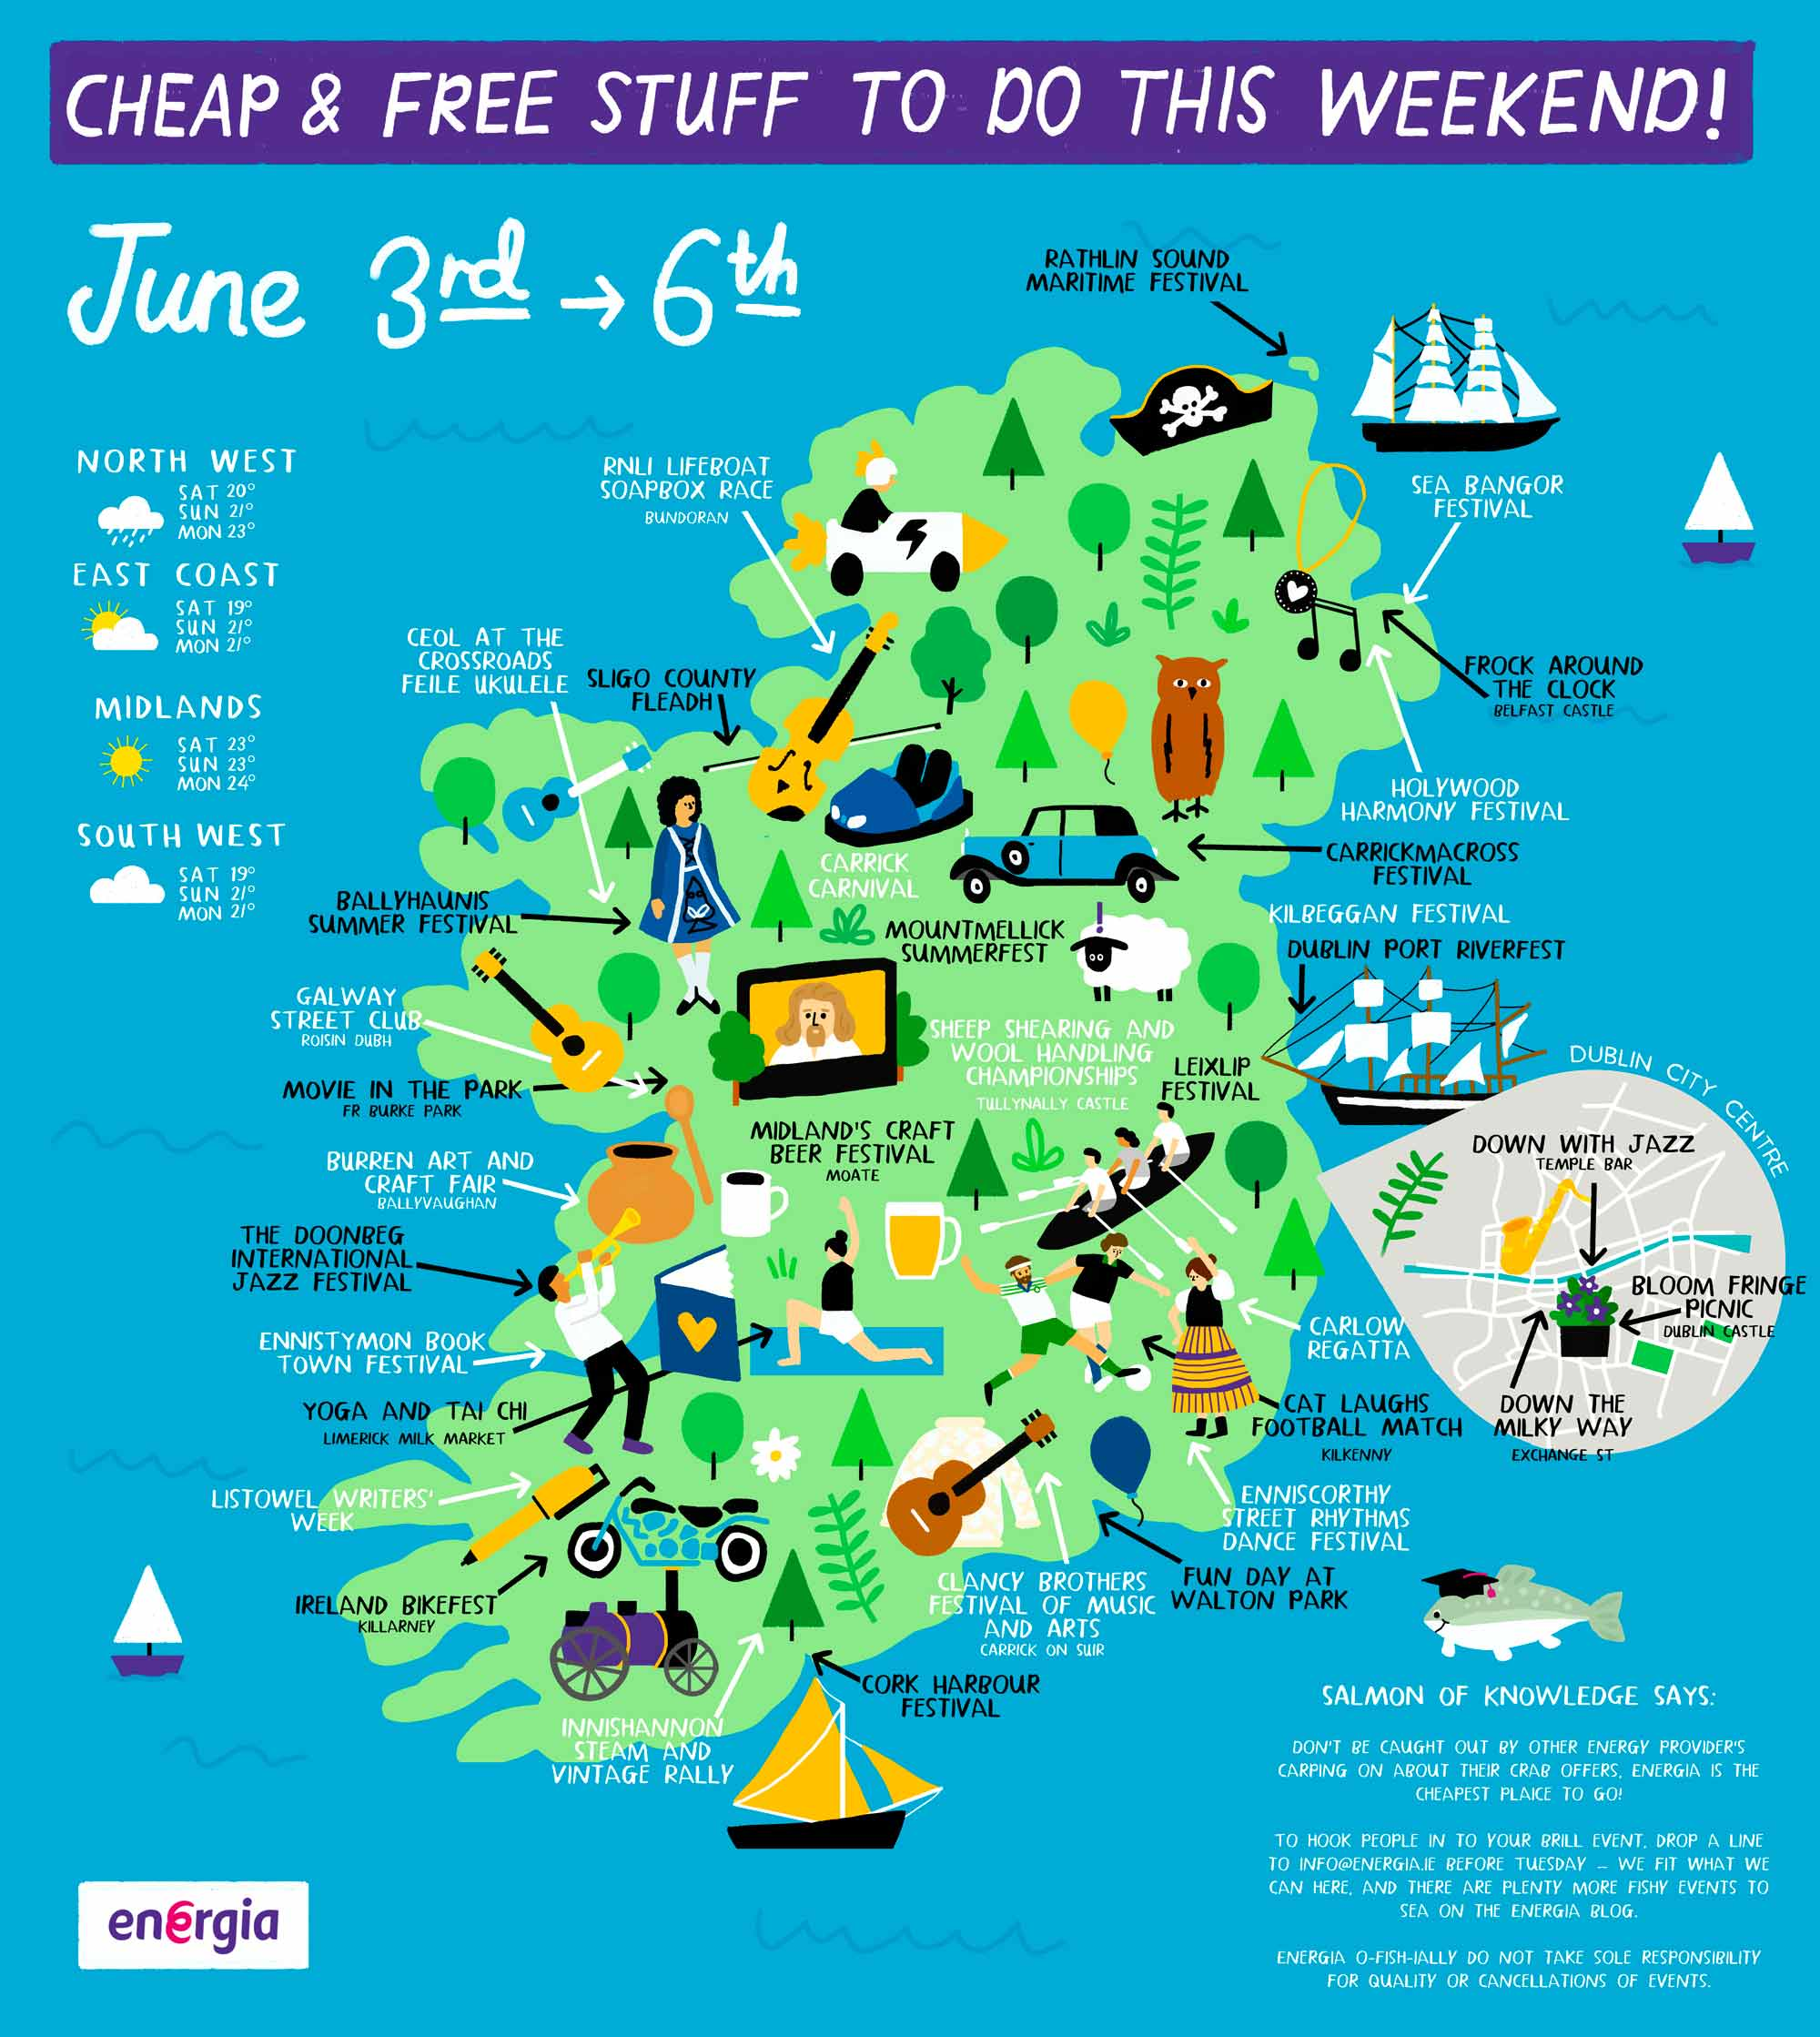 Cheap & Free stuff to do this weekend 3rd - 6th June